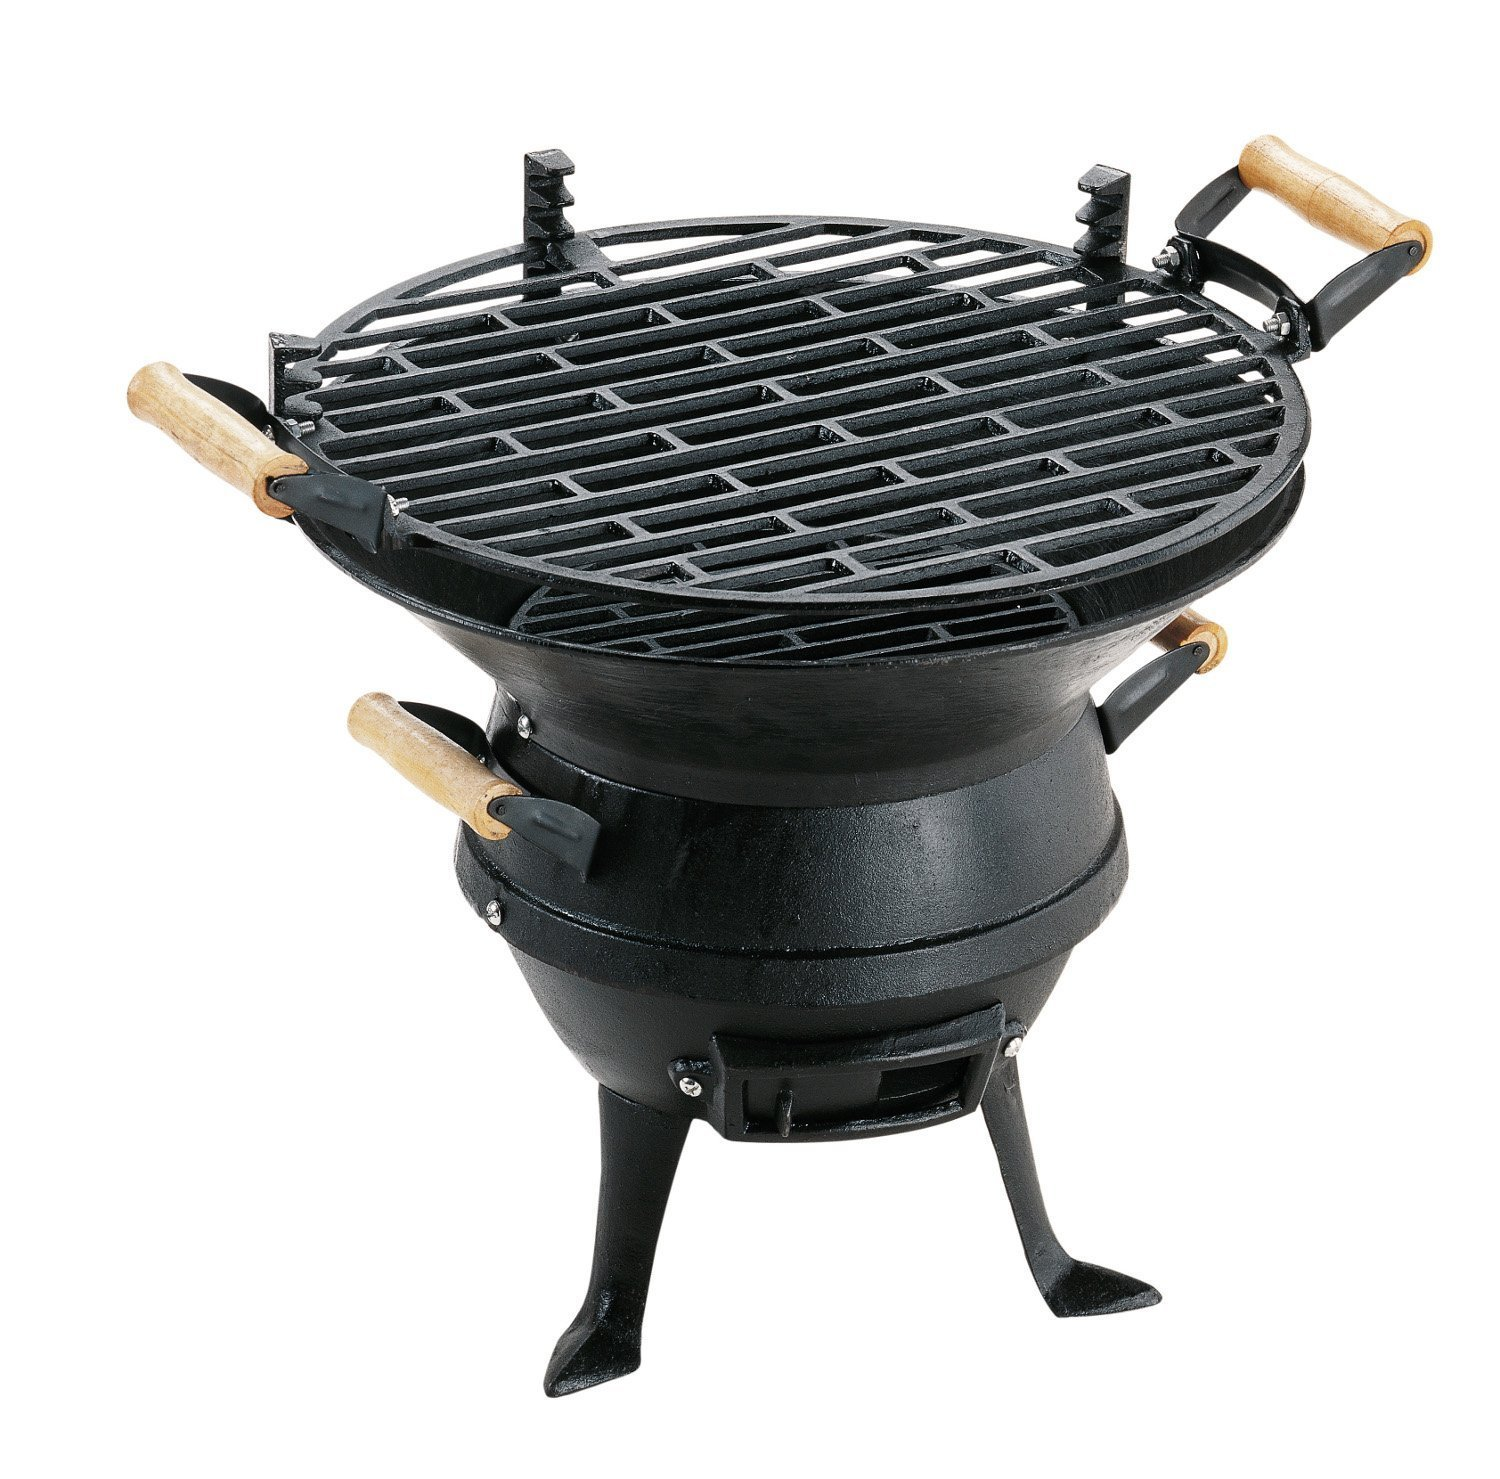 Lado Large Black Barrel Charcoal BBQ w/ Cast Iron Adjustable Grill Garden Camping Barbeque